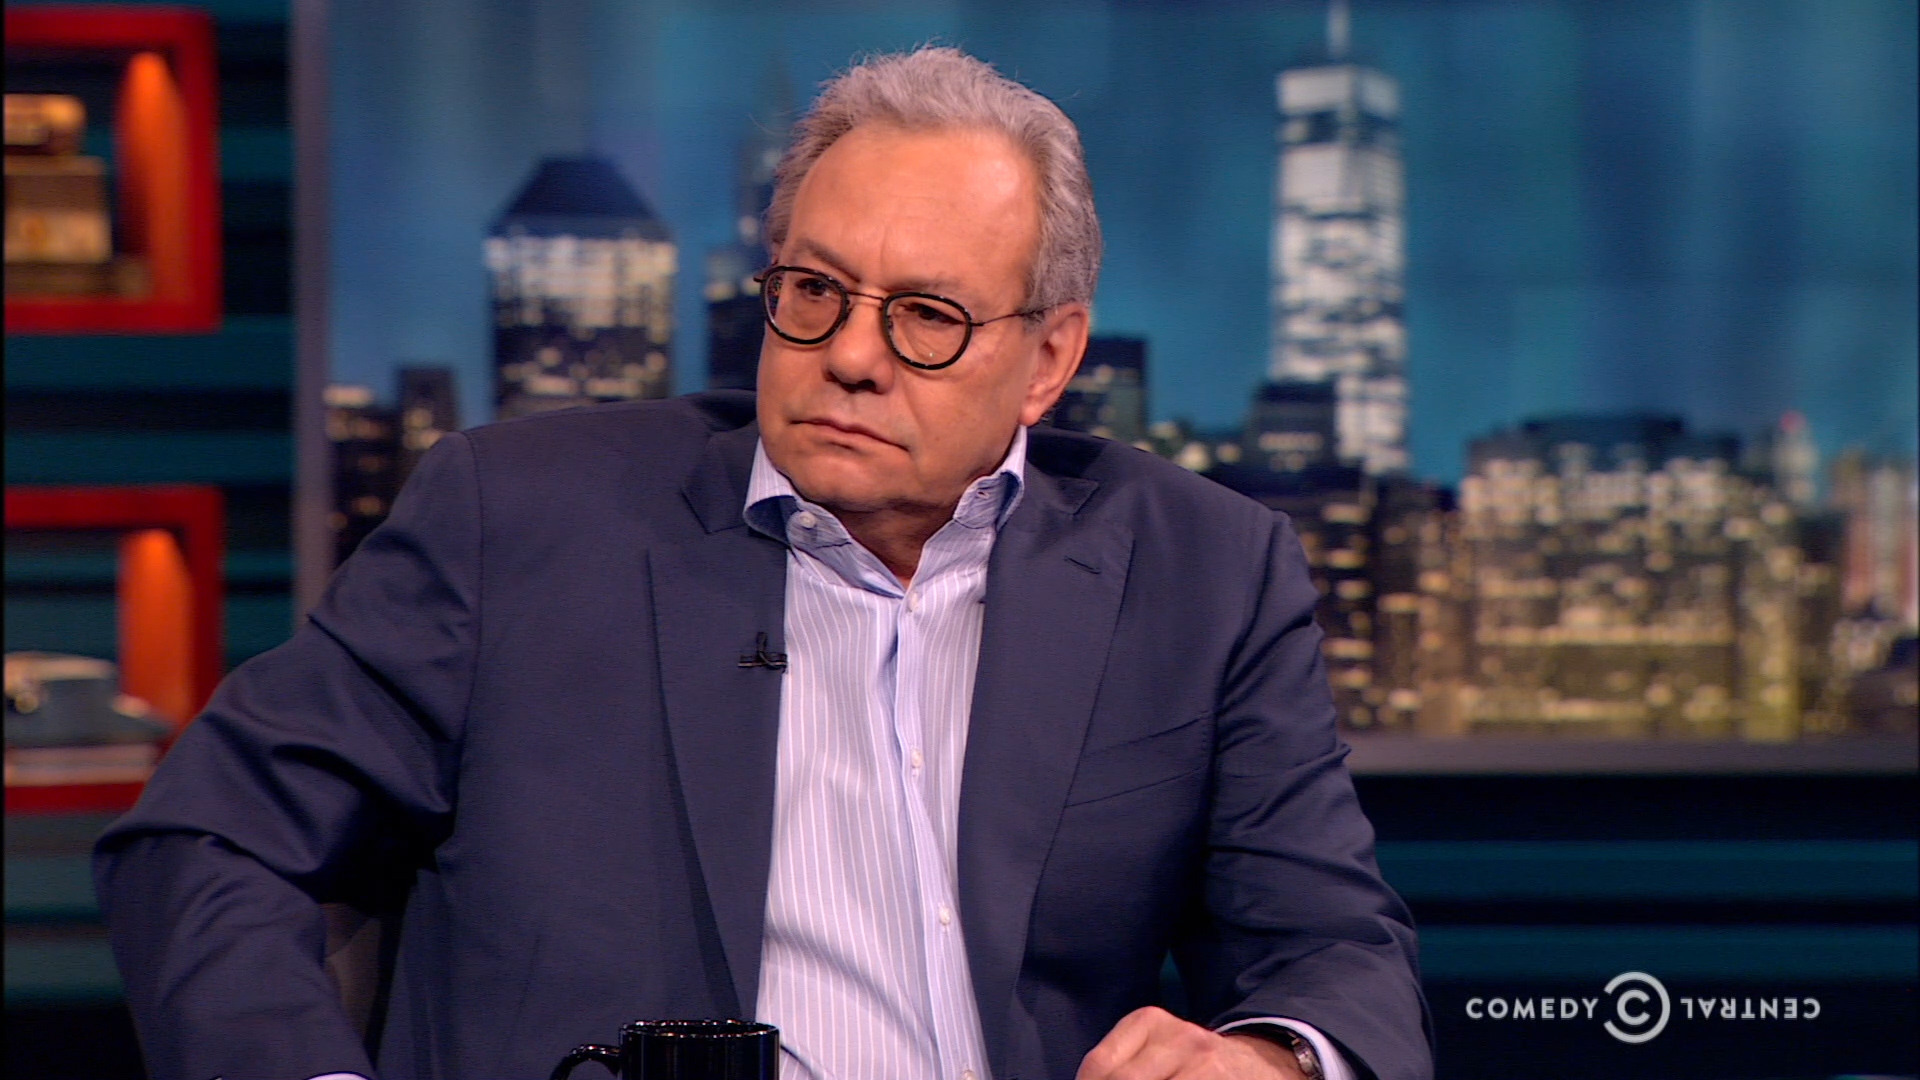 - LEWIS BLACK BODY-SWITCHES WITH MELANIA TRUMP